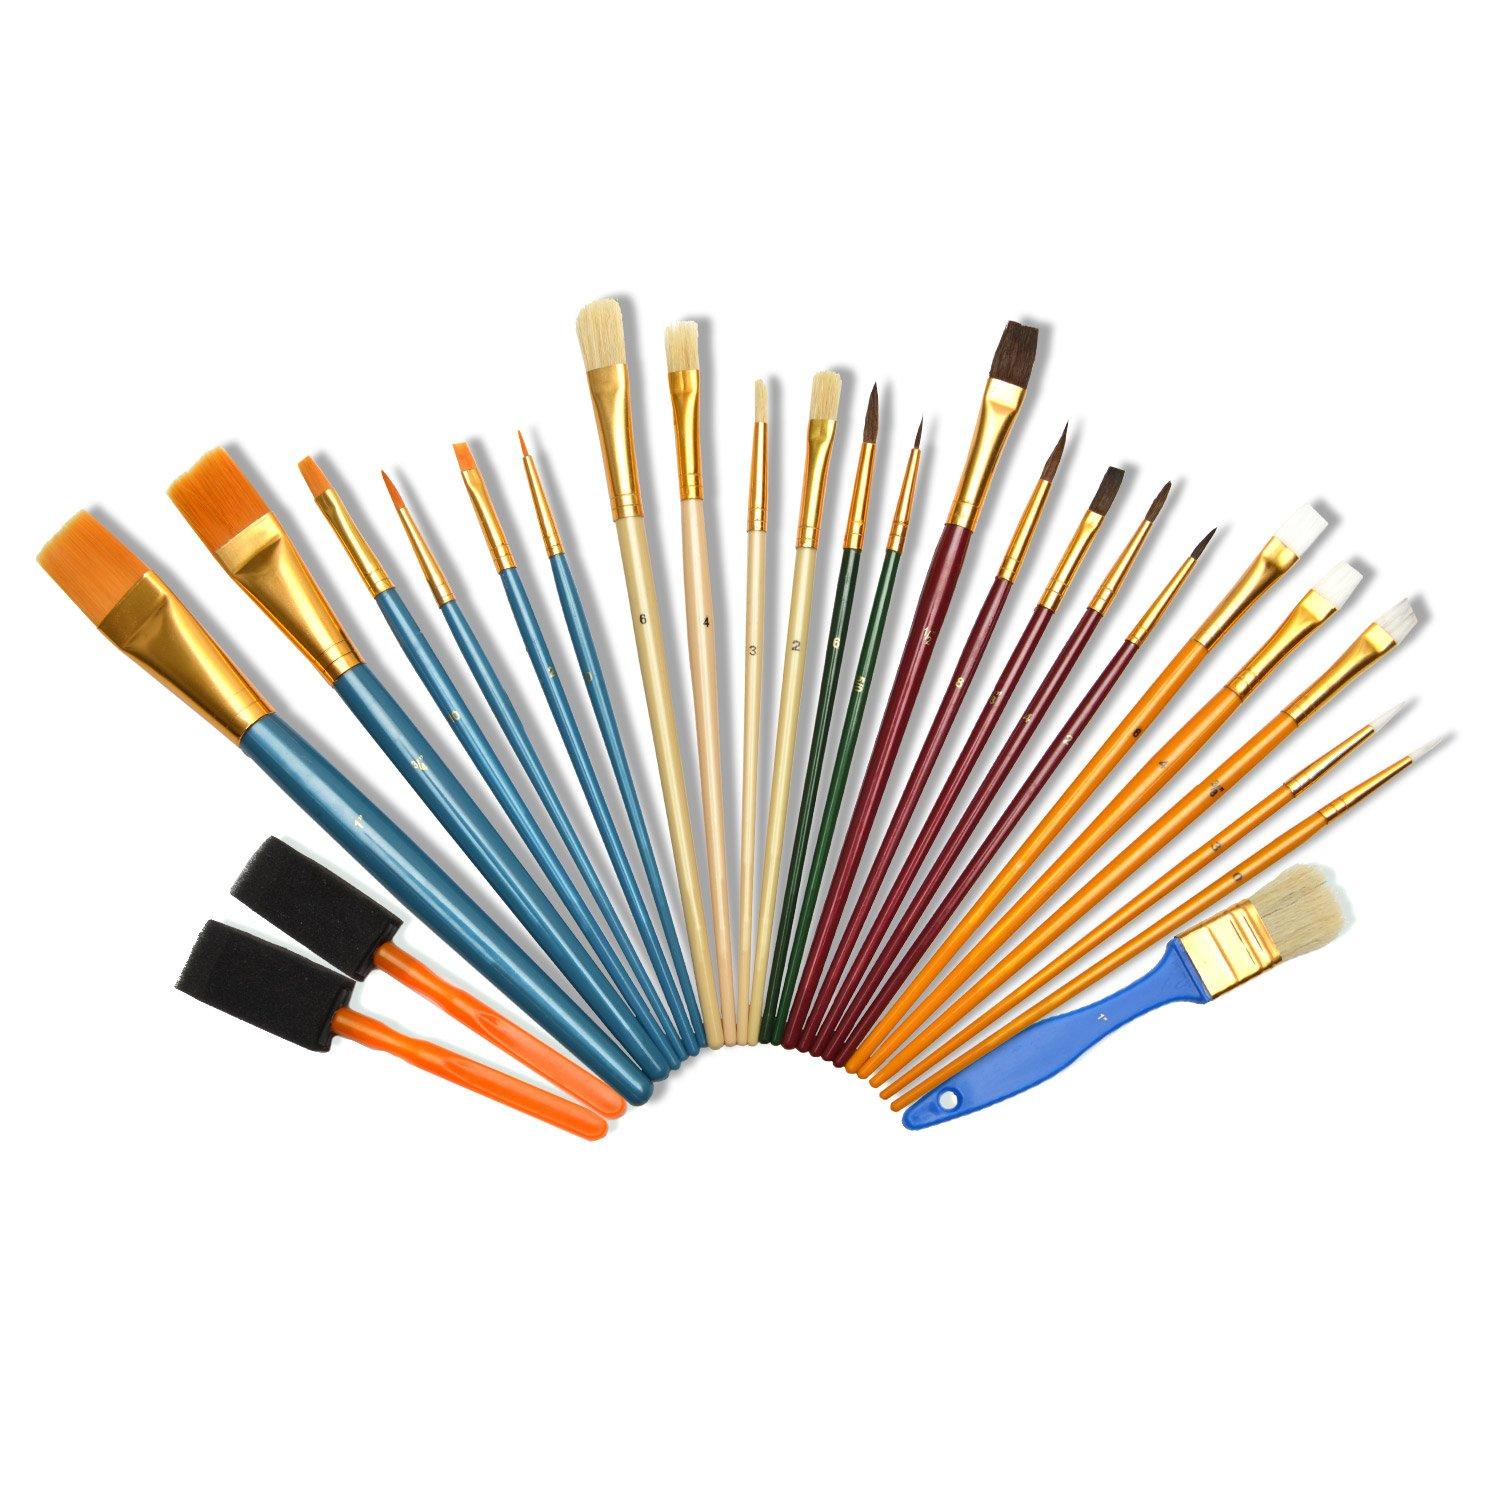 Artina 25 Piece Art Bristle Brush Set Various Brush Types & Sizes Ideal for Acrylic Watercolor & Oil Painting